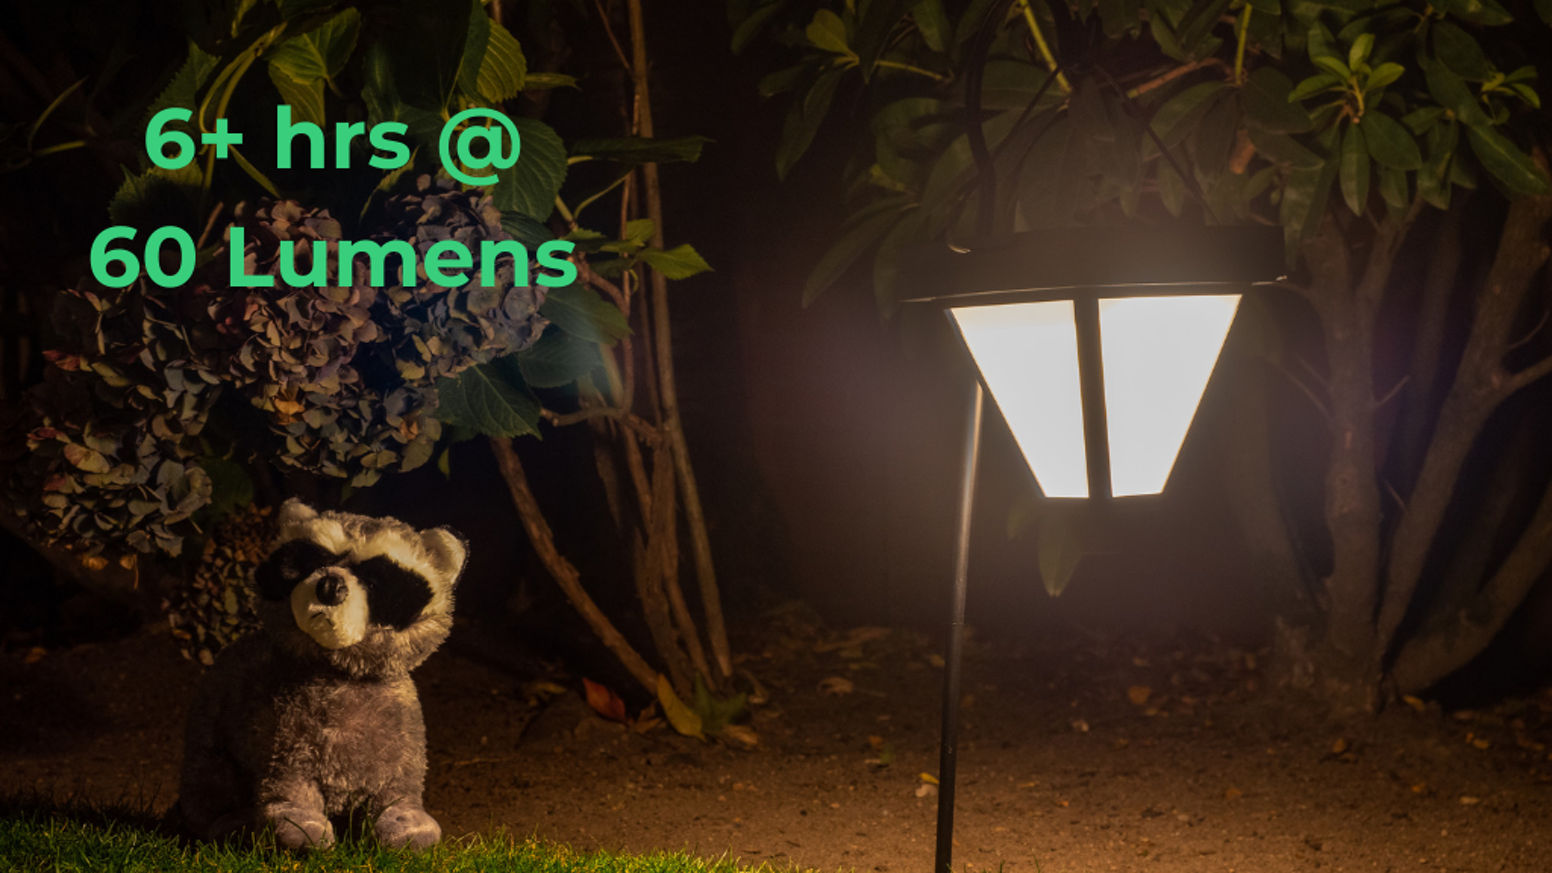 Finally see what dangers lurk in your dark yard with a super bright, weather-proof solar garden light that lasts up to 6+ hours.